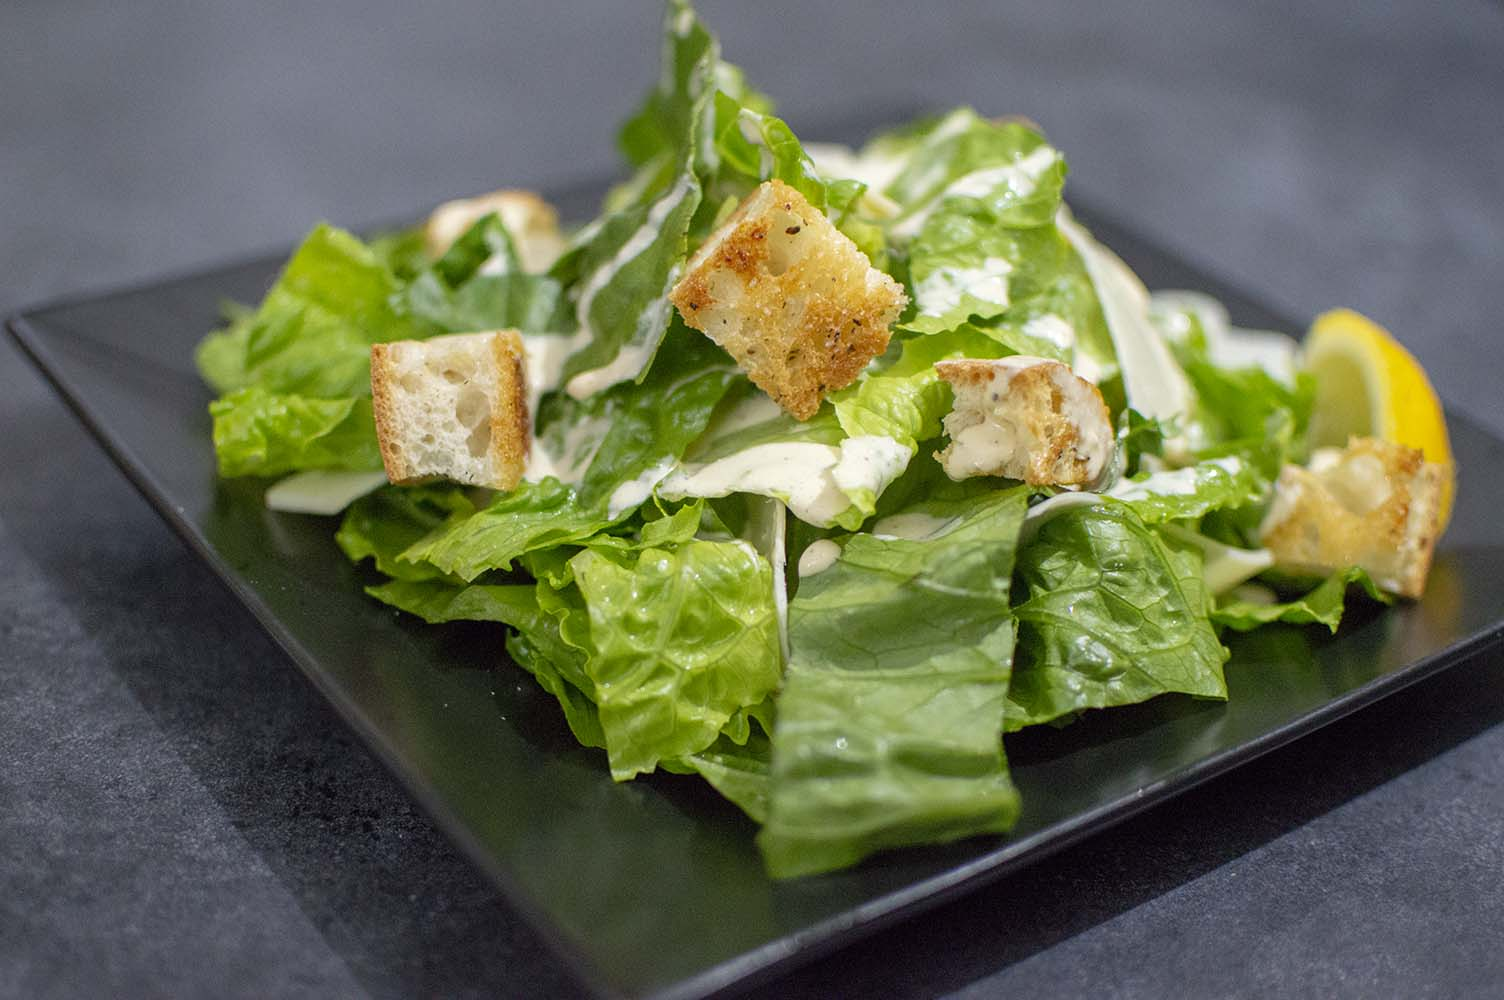 Homemade Caesar Salad dished up and ready to eat